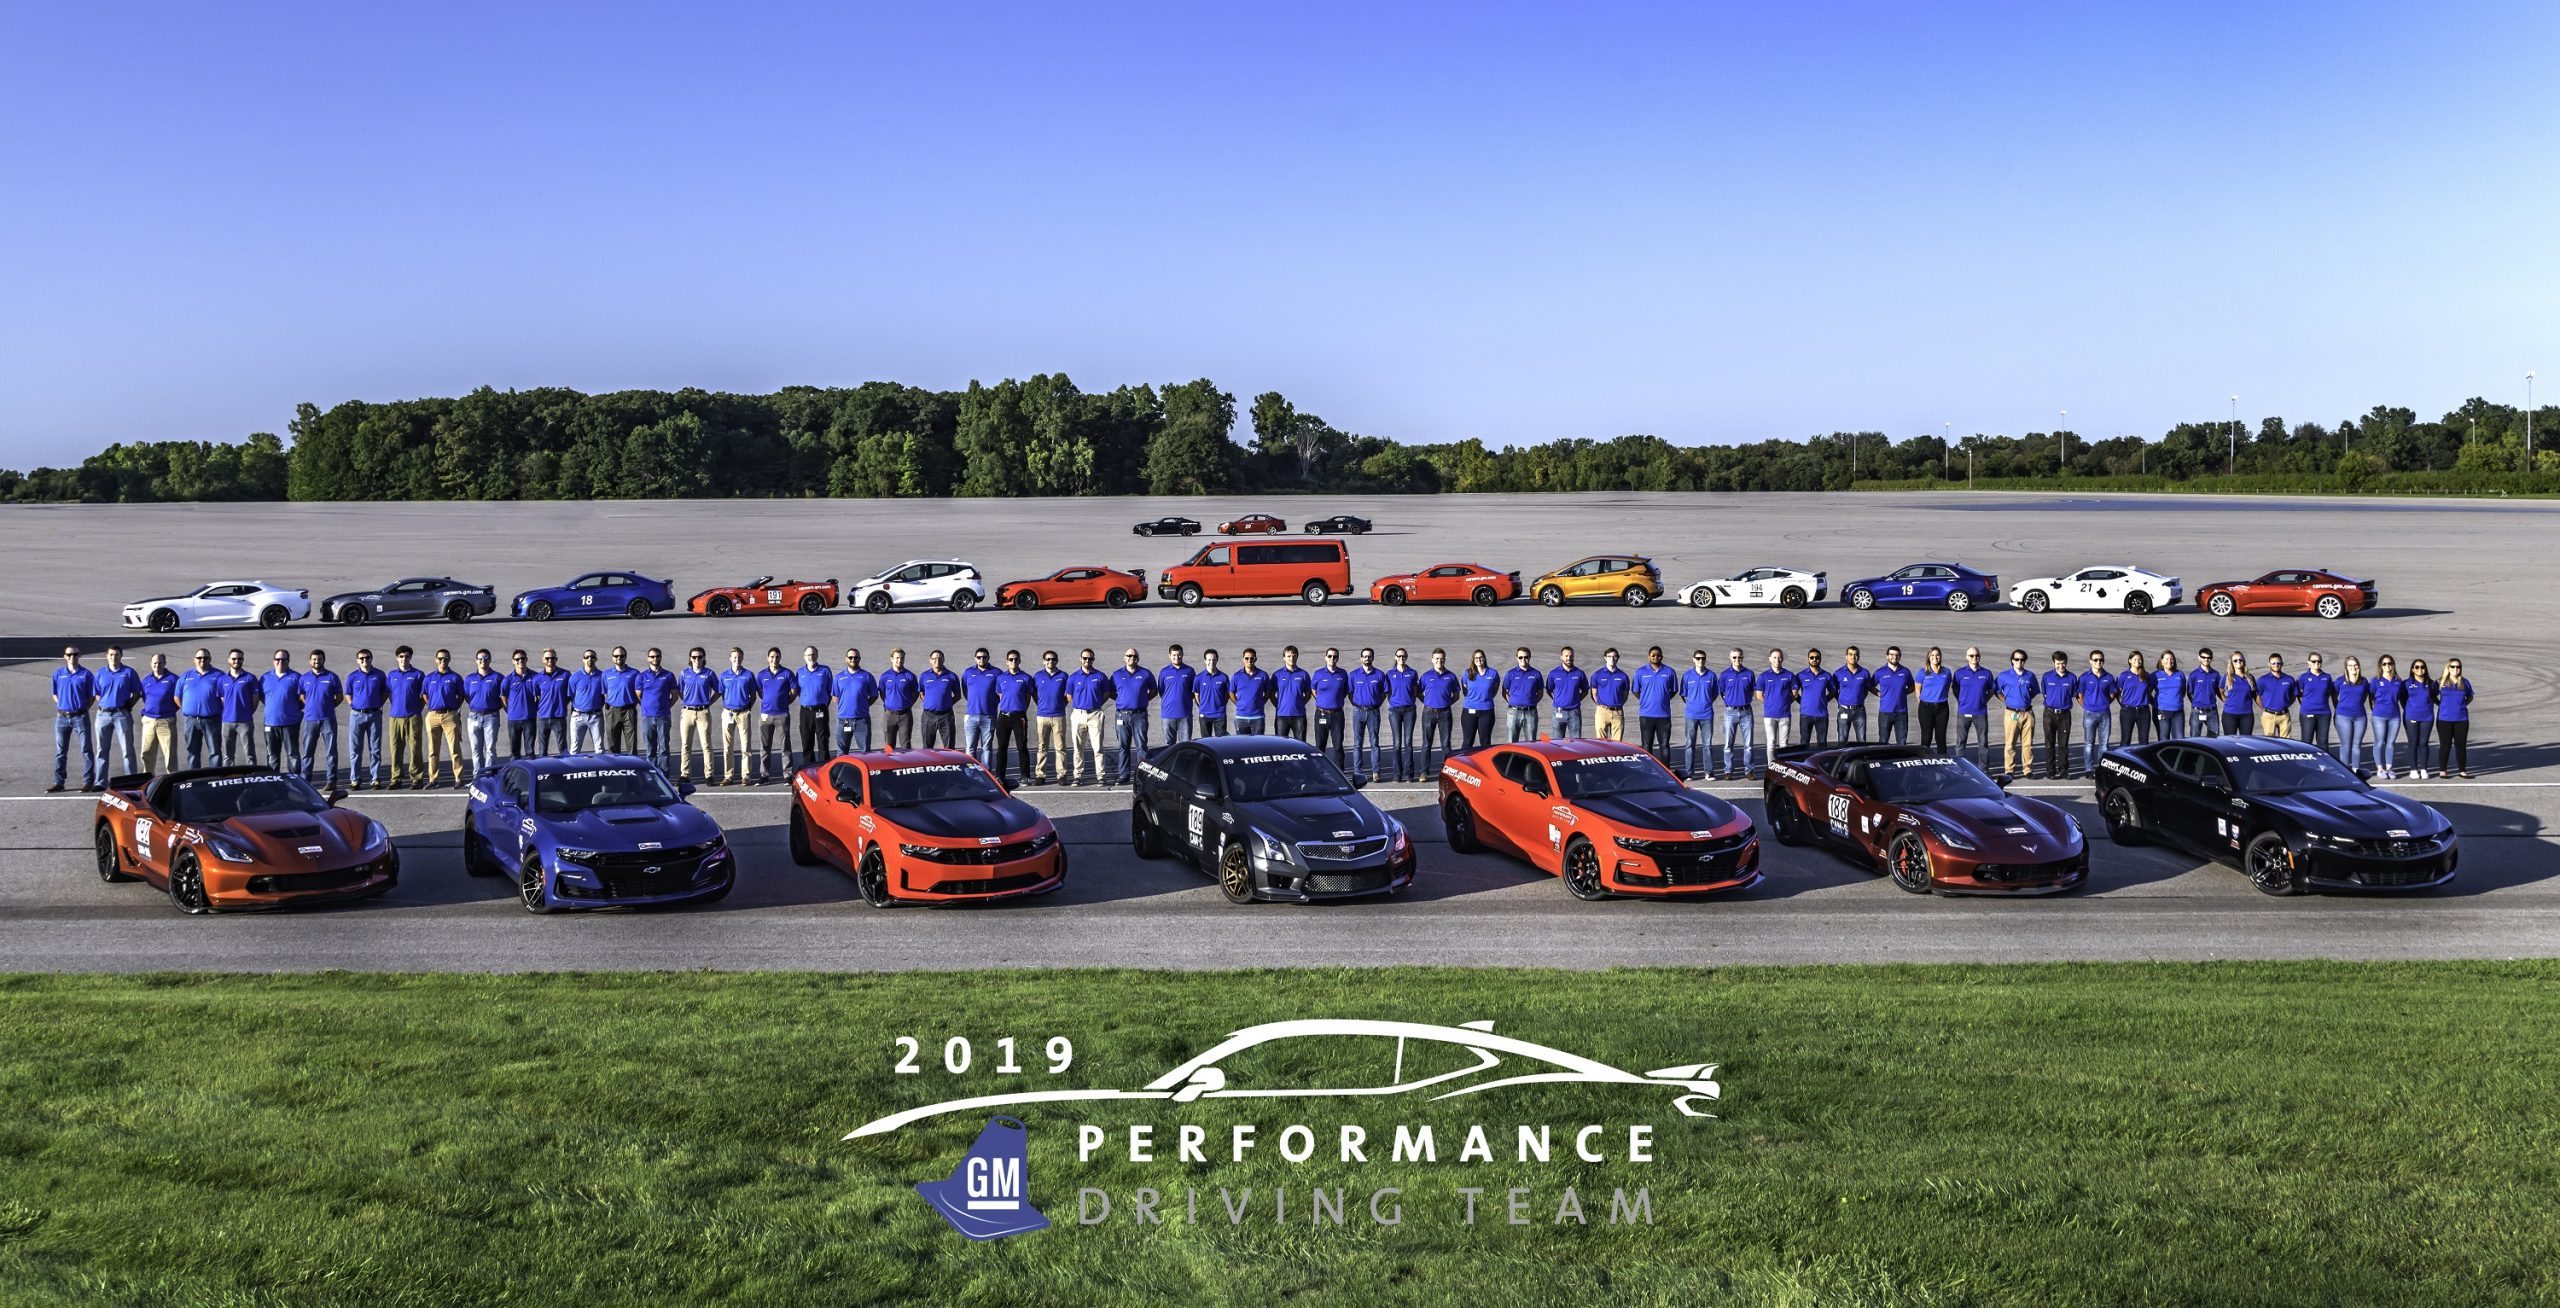 GM Performance driving team group